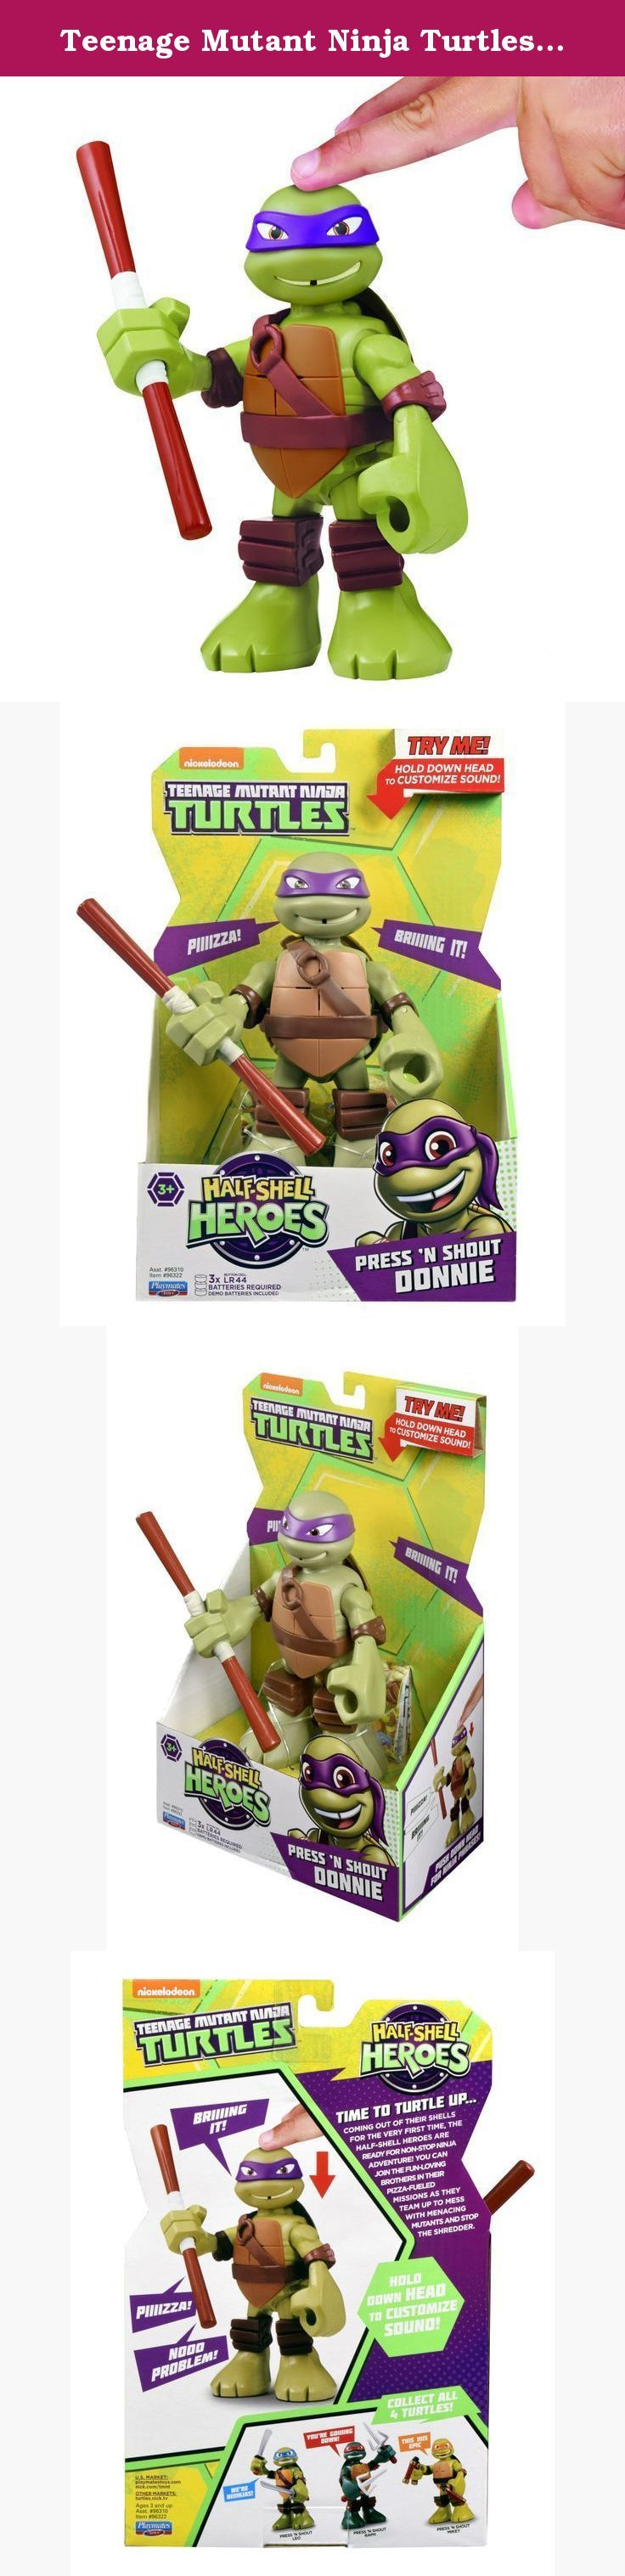 "Teenage Mutant Ninja Turtles Pre-Cool Half Shell Heroes 6"" Donatello Powersound Talking Turtles Figure. Coming out of their shells for the very first time, the Half-Shell Heroes are ready for non-stop ninja adventure! You can join the fun-loving brothers in their pizza-fueled missions as they team up to mess with menacing mutants and stop the Shredder."